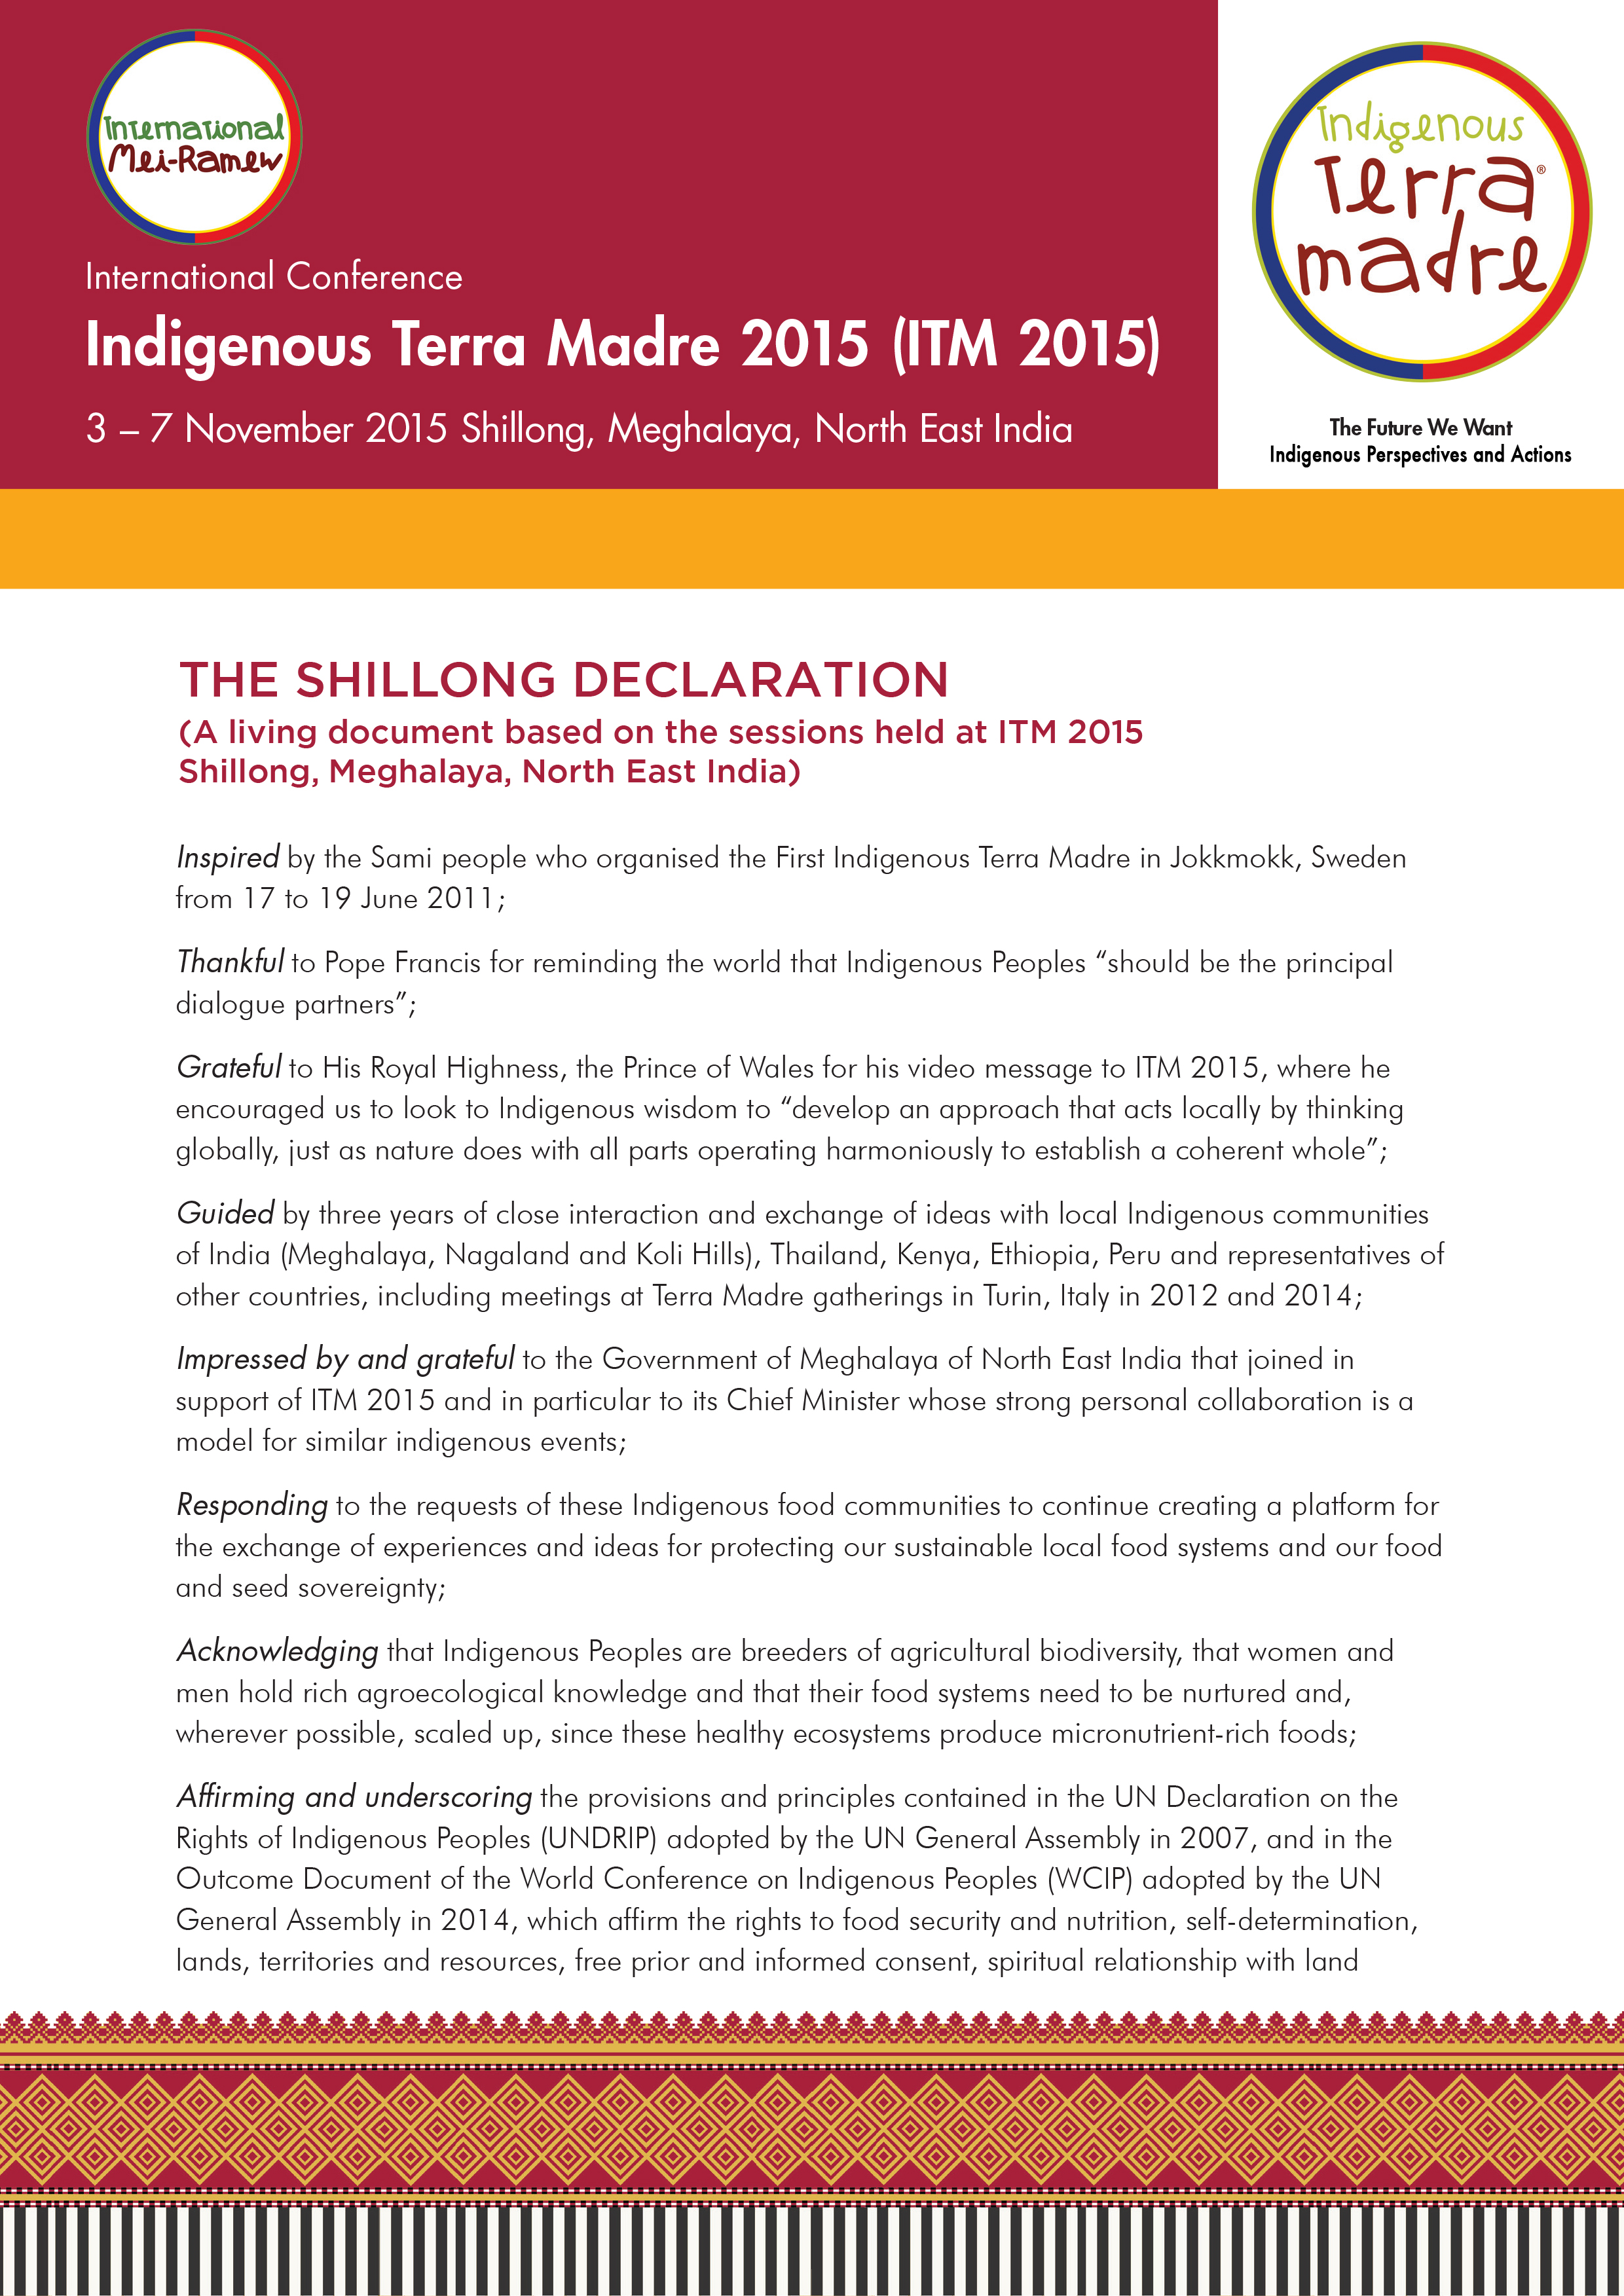 1 THE SHILLONG DECLARATION_English_7 March 2016-1